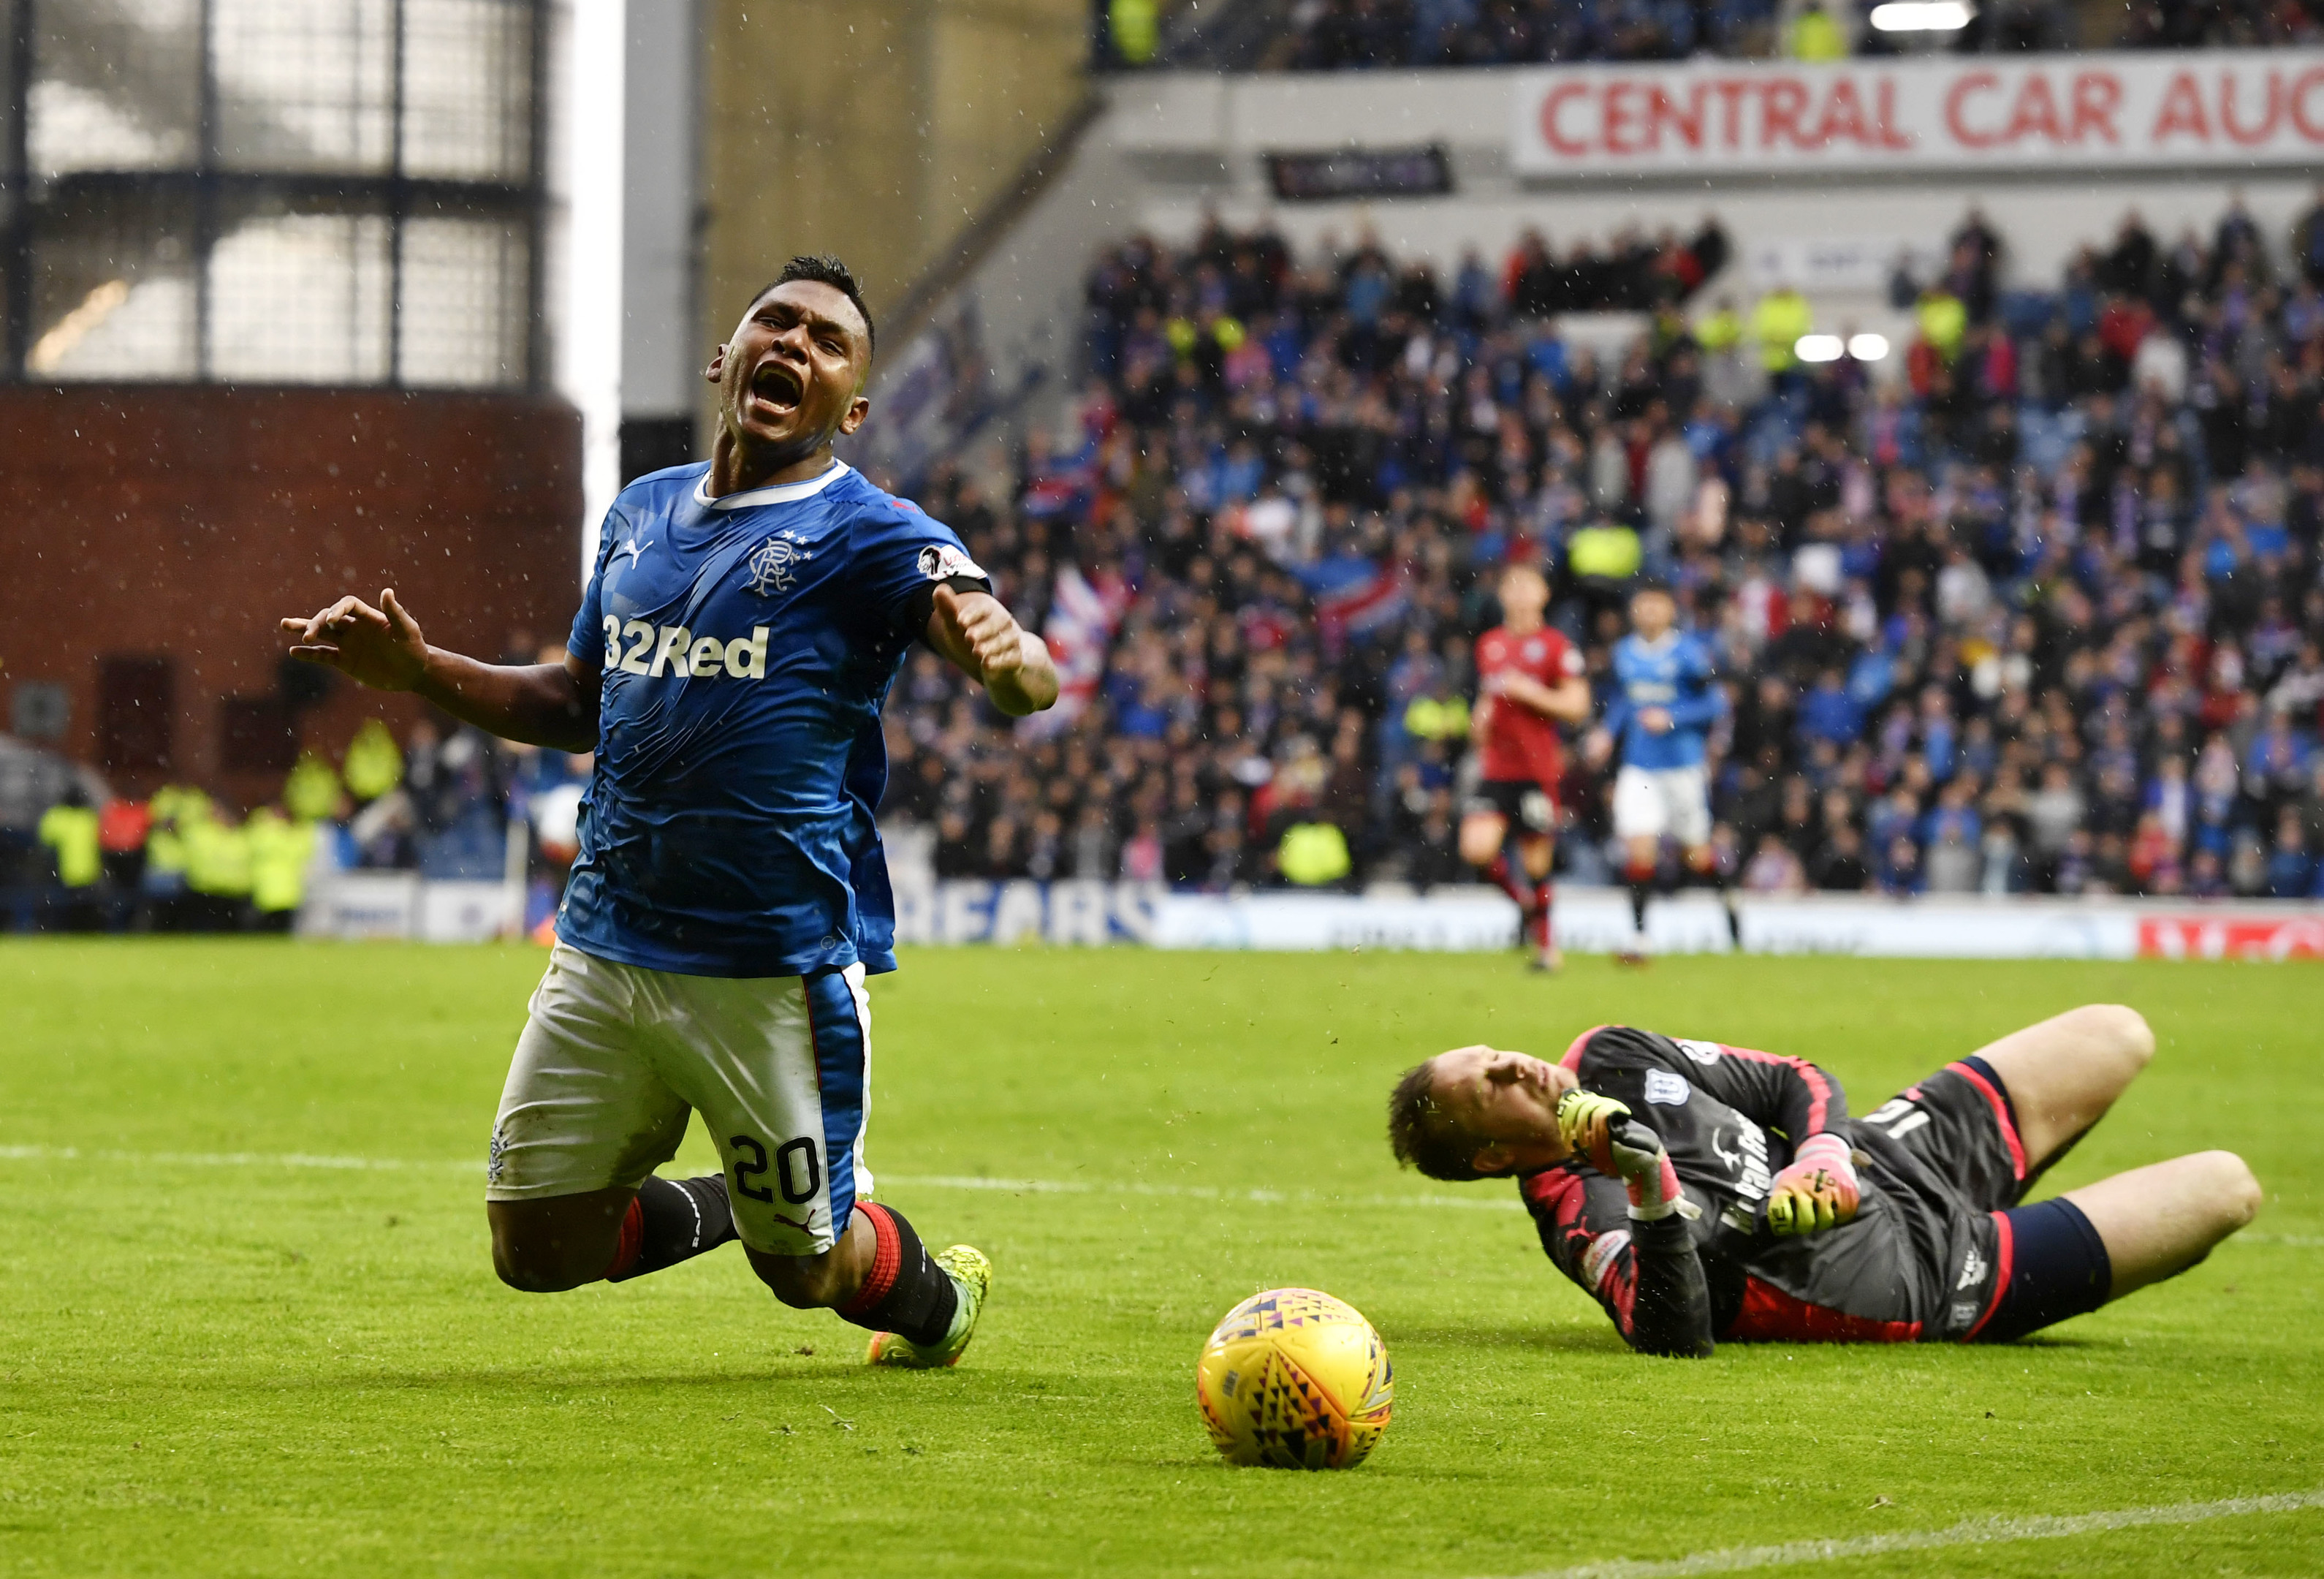 Alfredo Morelos was initially judged to have dived